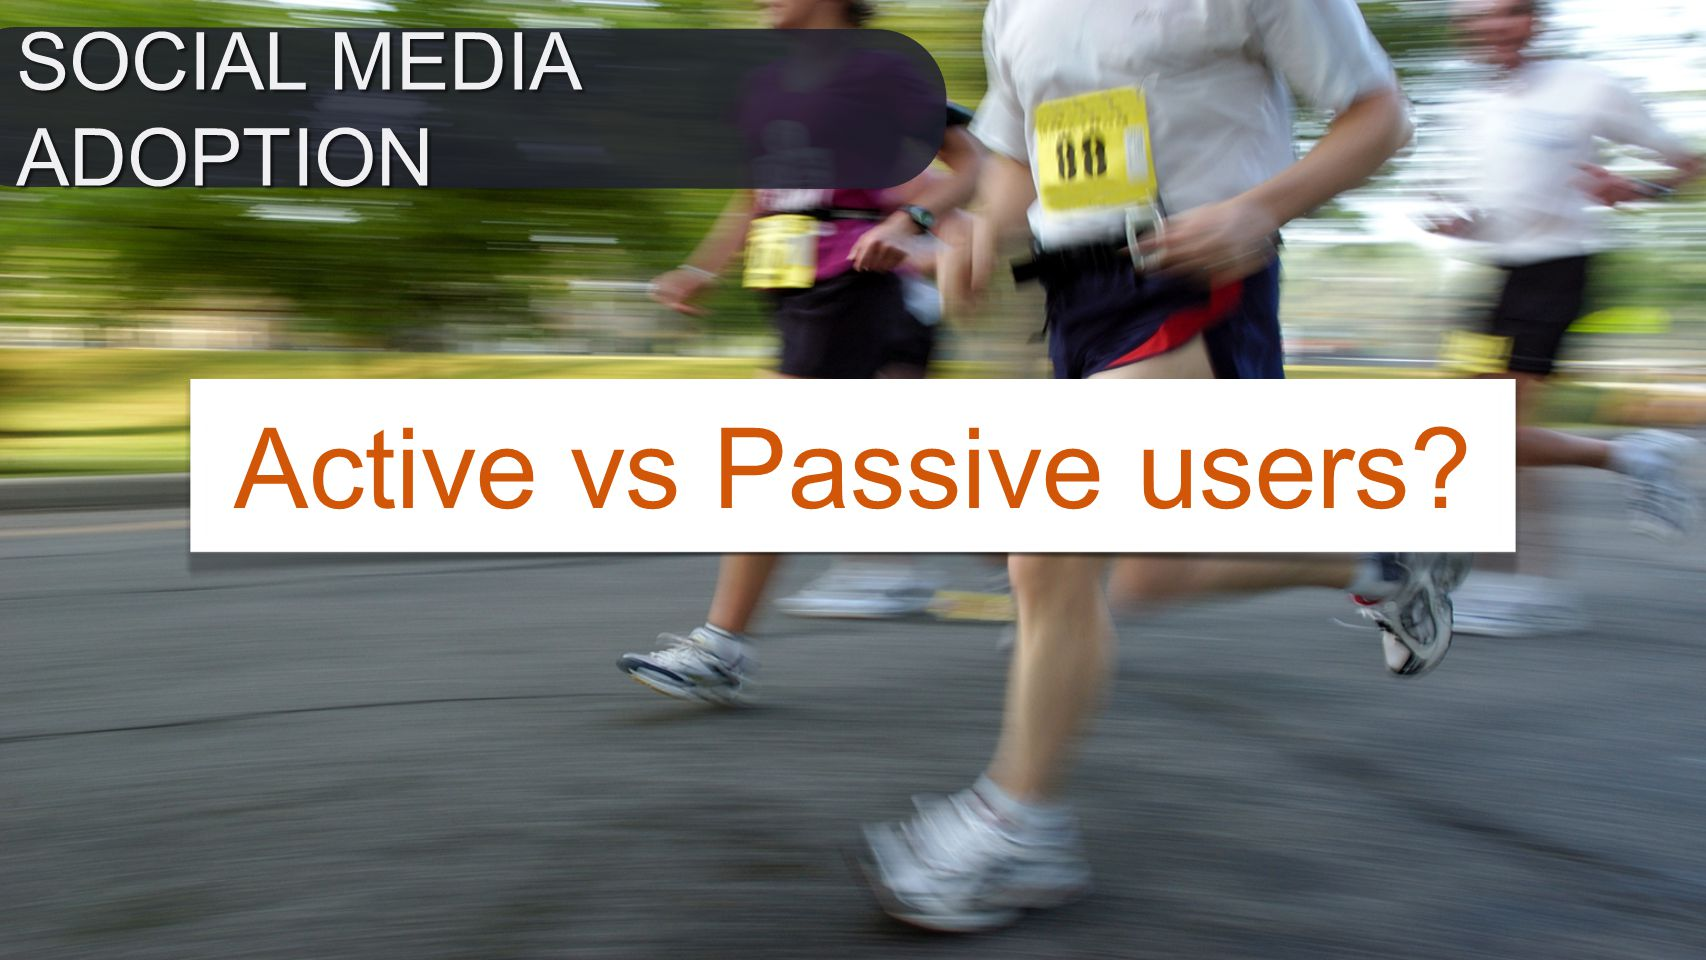 Active vs Passive users? SOCIAL MEDIA ADOPTION